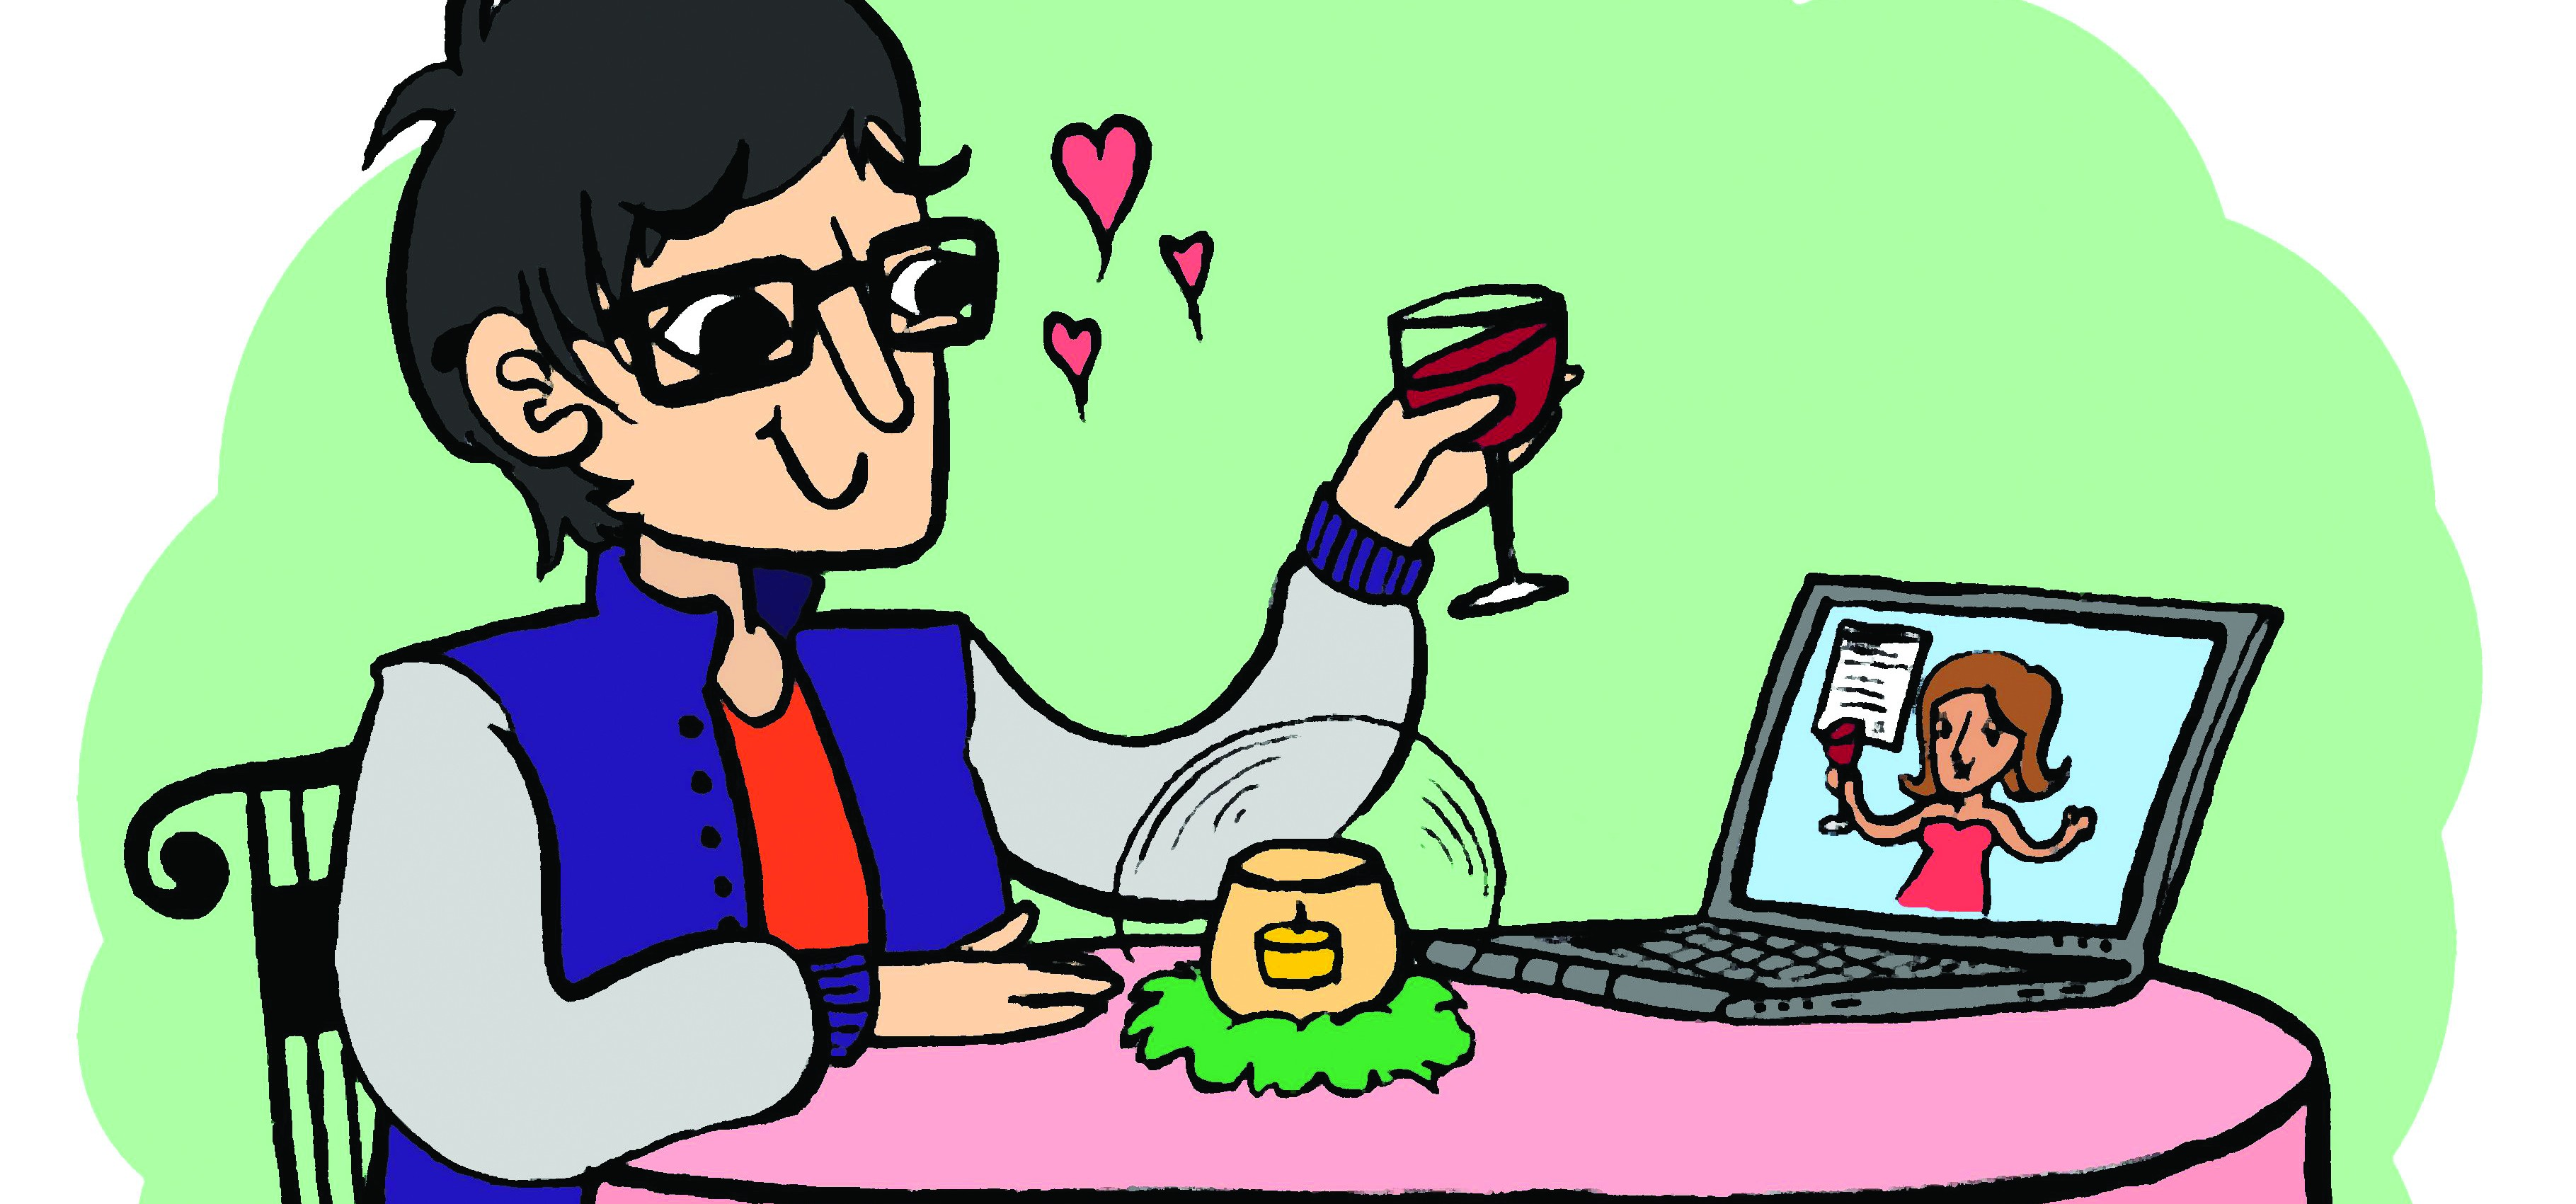 Scientific american dating in a digital world